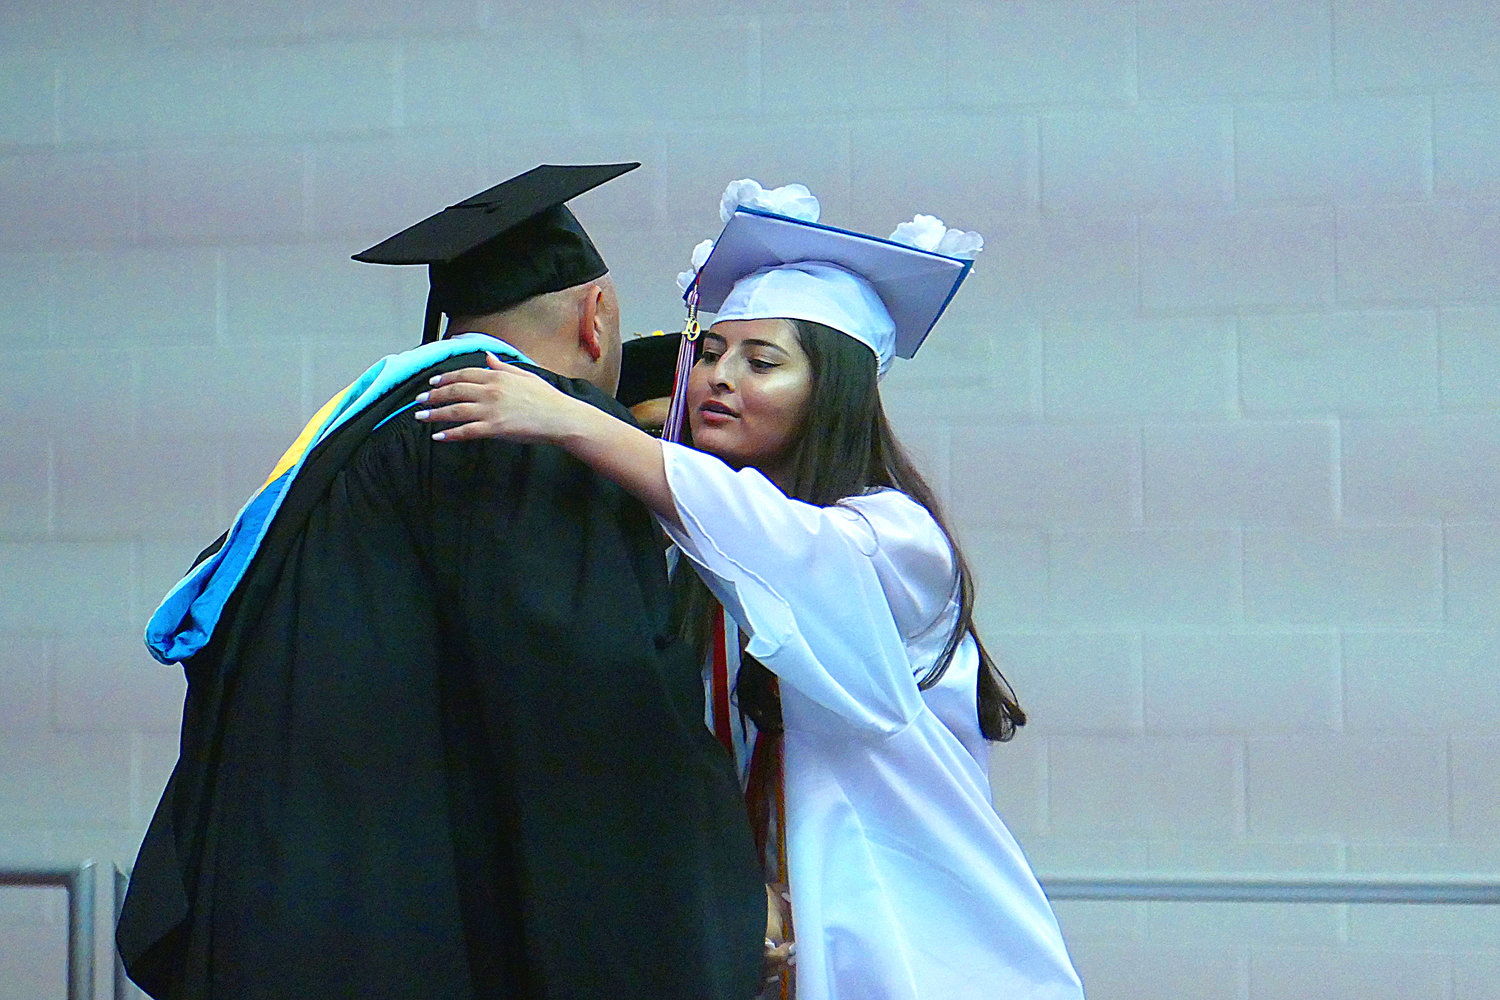 Valedictorian Leah Hochman, far left, hugged Principal Joseph Mille after receiving her diploma.